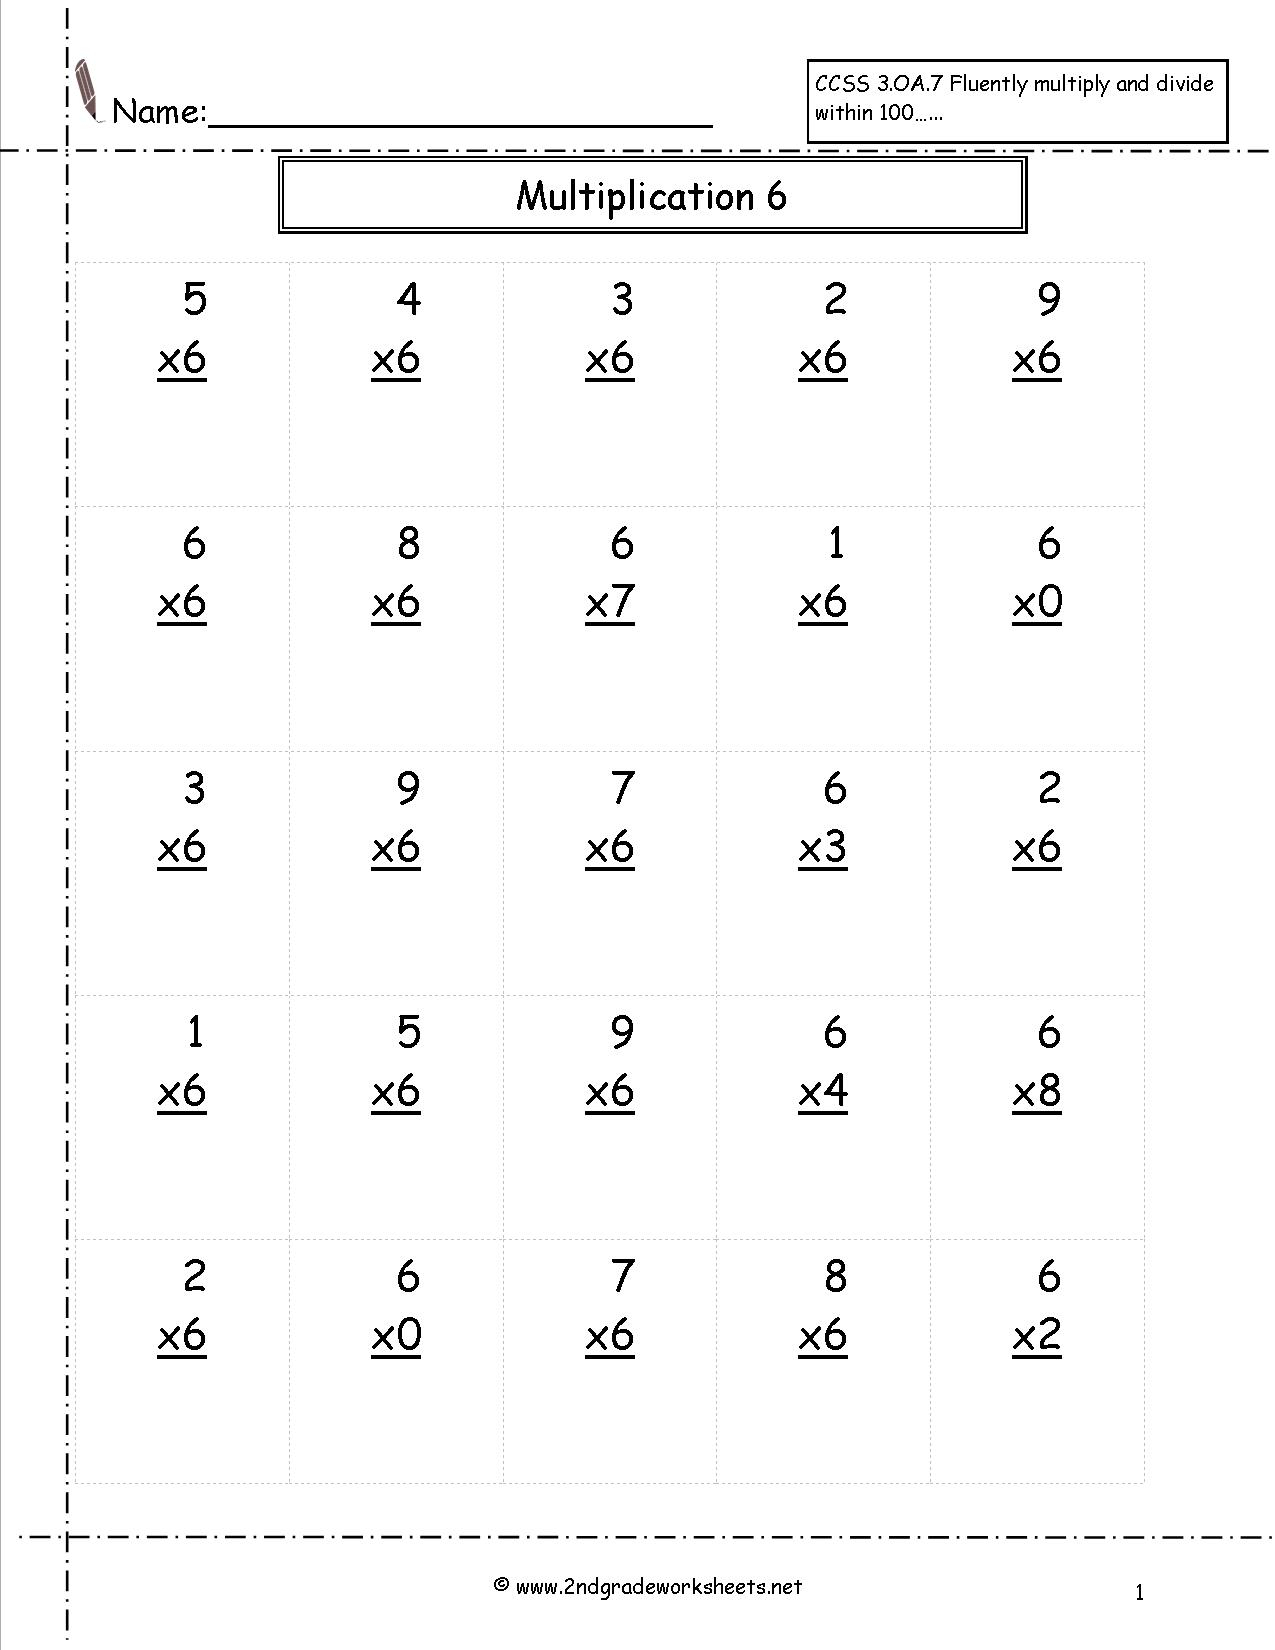 Multiplication Worksheets And Printouts inside Multiplication Homework Printable